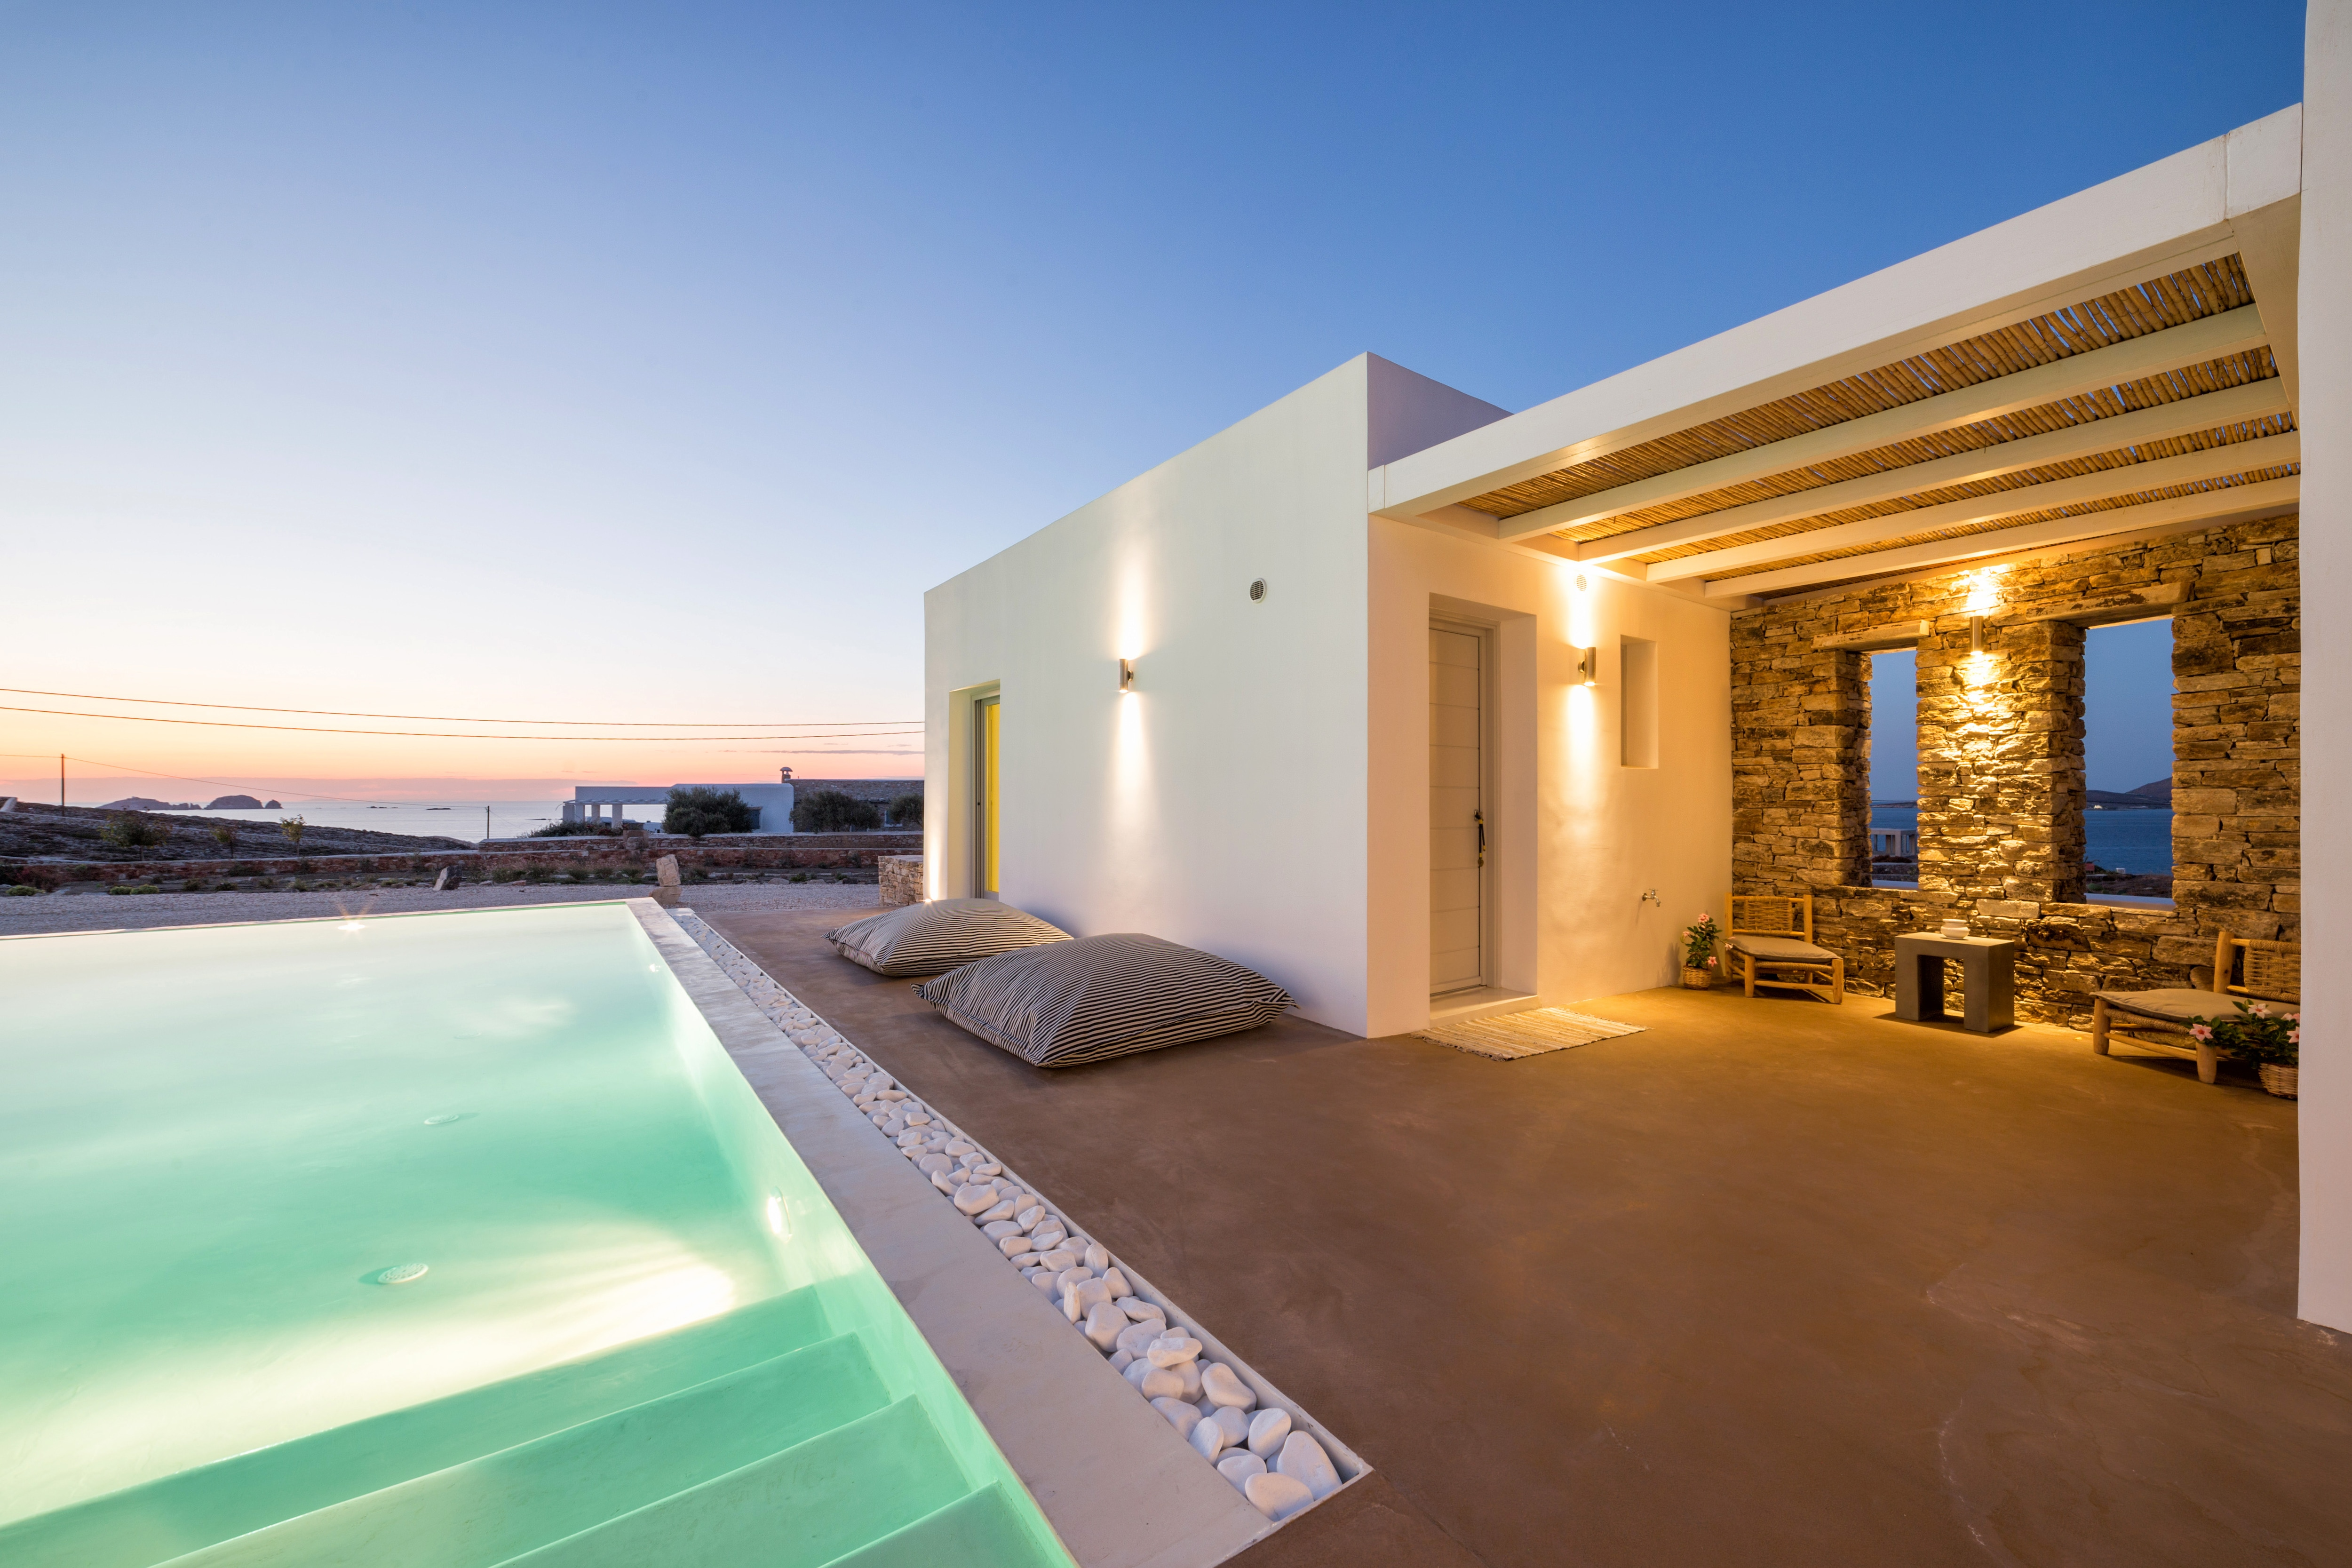 Property Image 2 - Classic Minimalist Villa with private pool